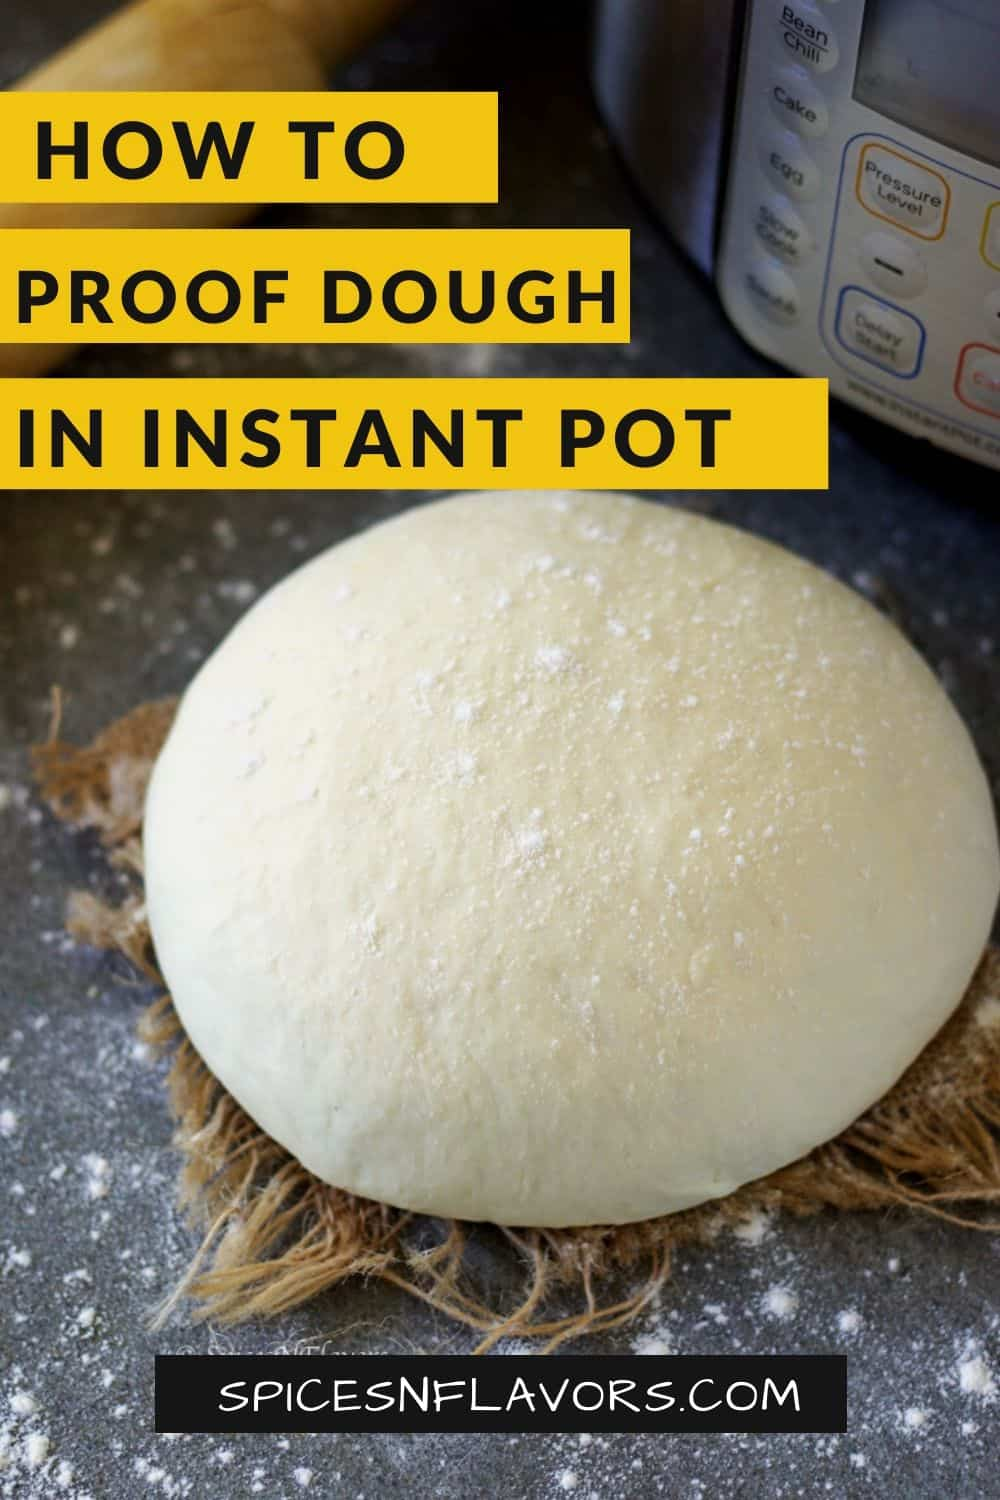 bread dough proofed in instant pot